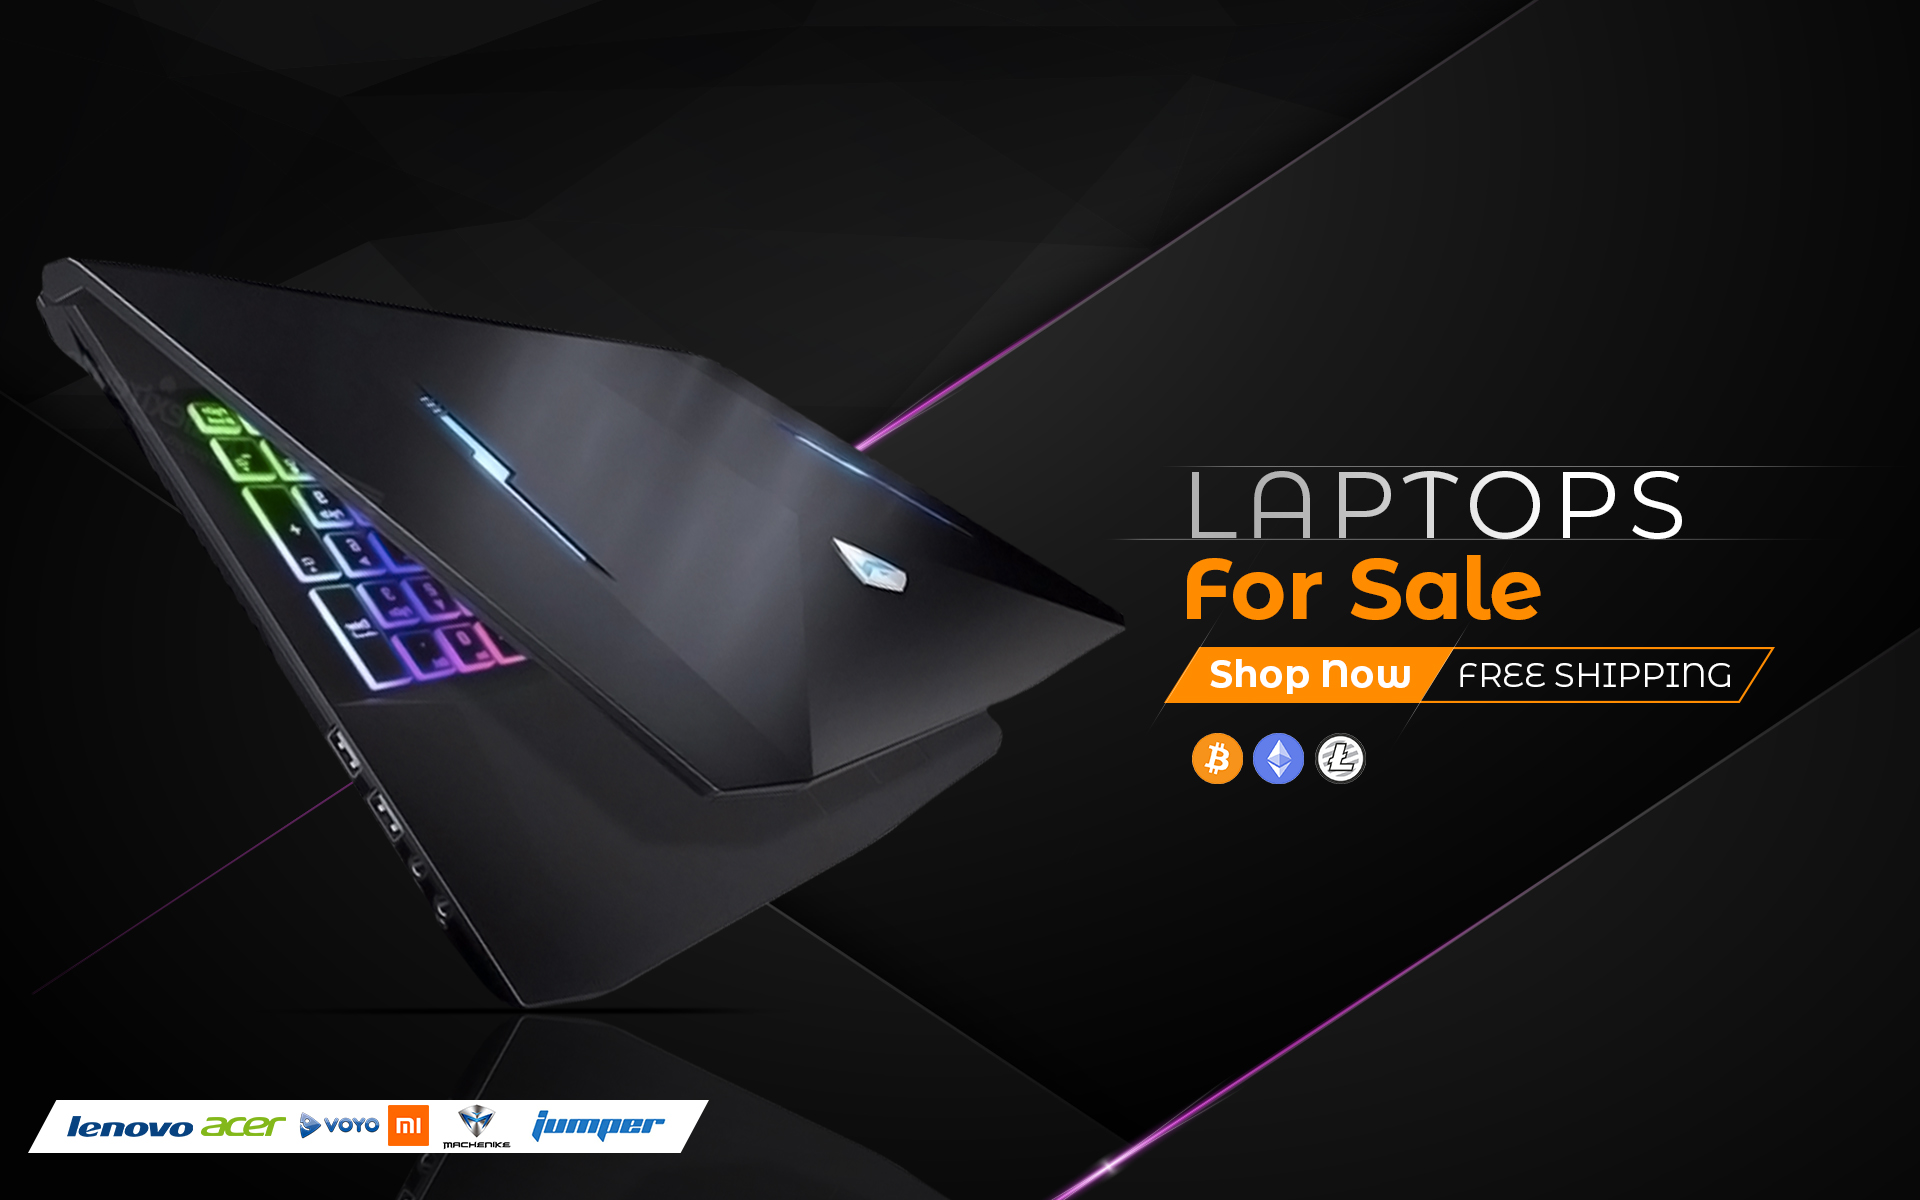 Click to see the latest laptops for sale on Gipsybee.com